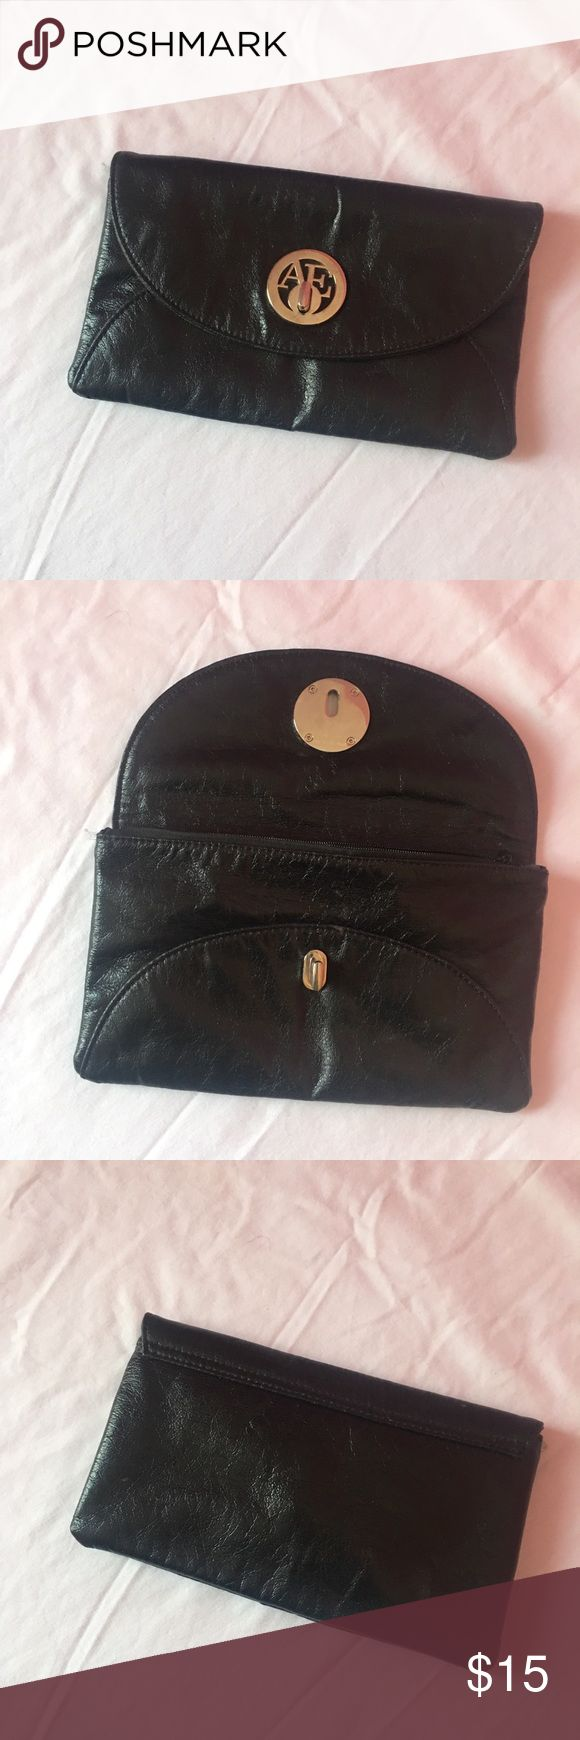 american eagle outfitters black clutch - lightly used  - open to offers + bundles + questions American Eagle Outfitters Bags Clutches & Wristlets